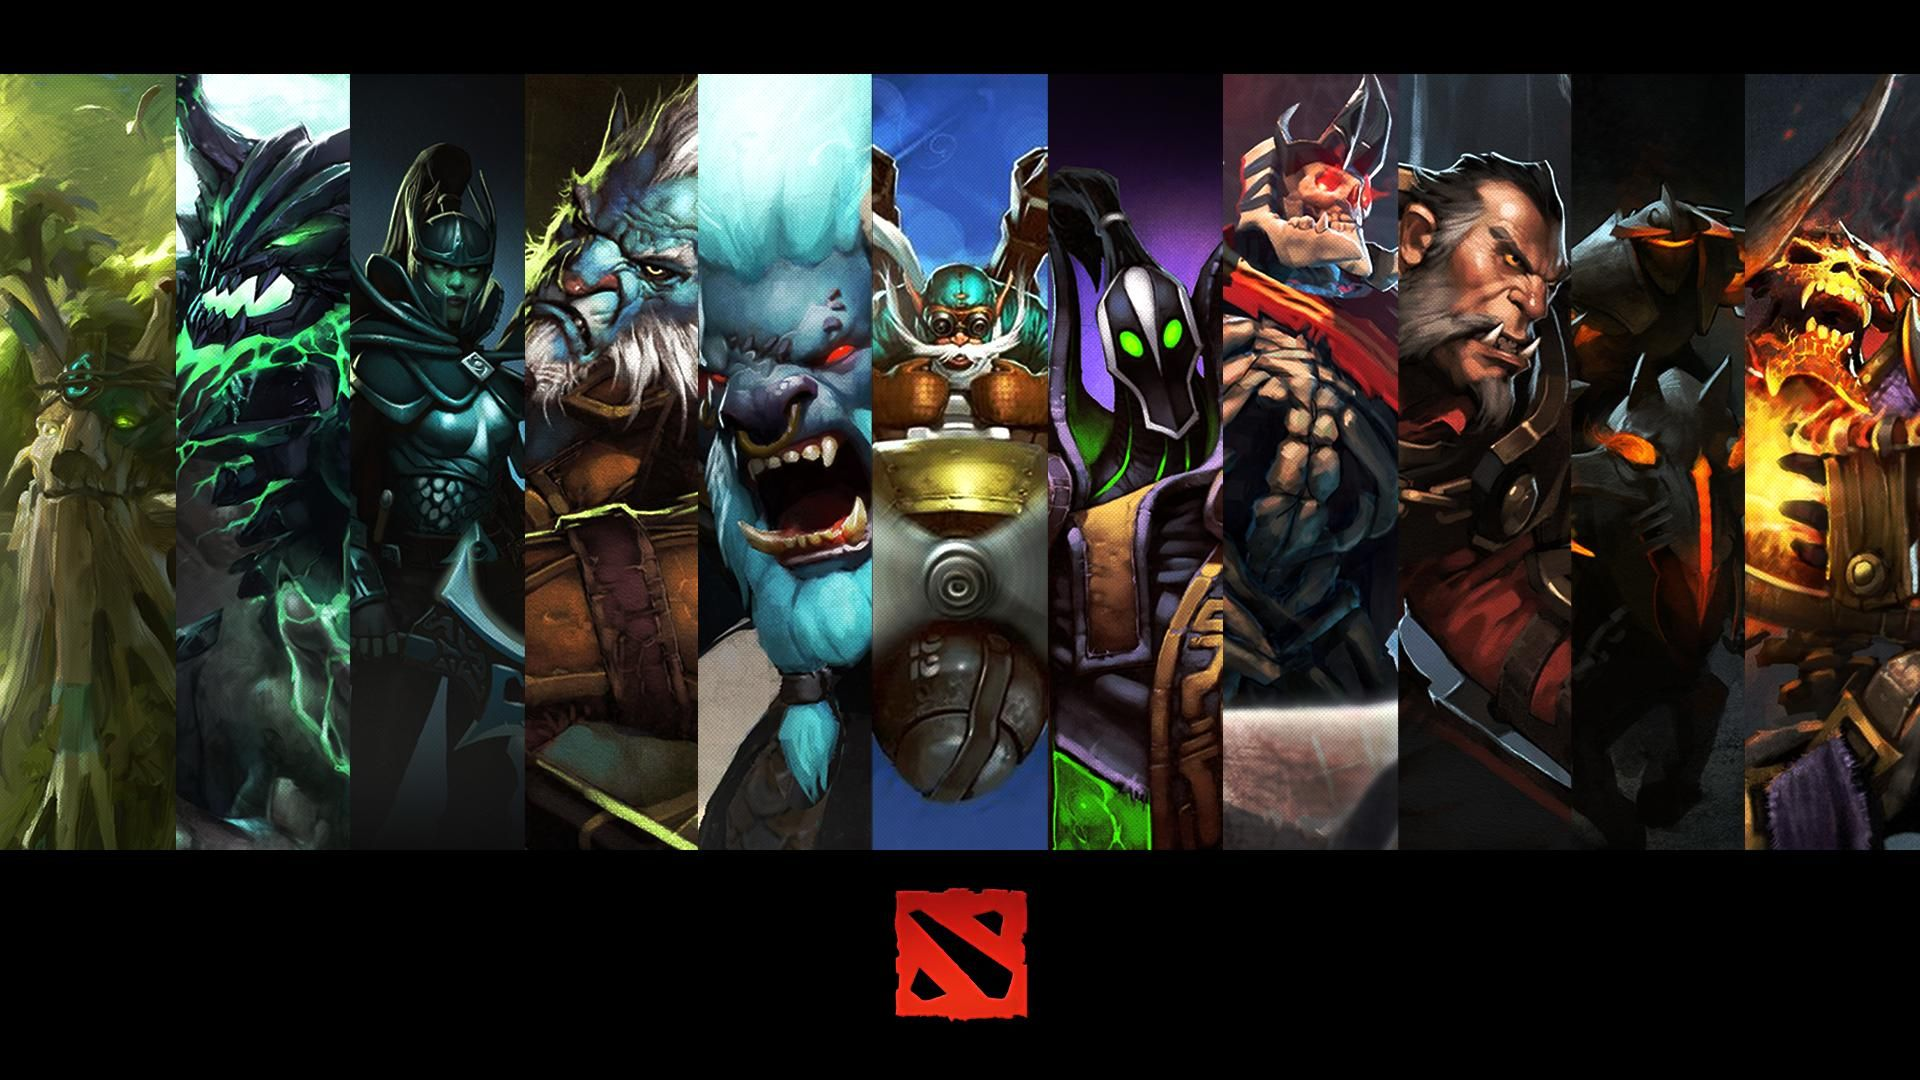 dota 2 heroes wallpapers 1080p sdeerwallpaper